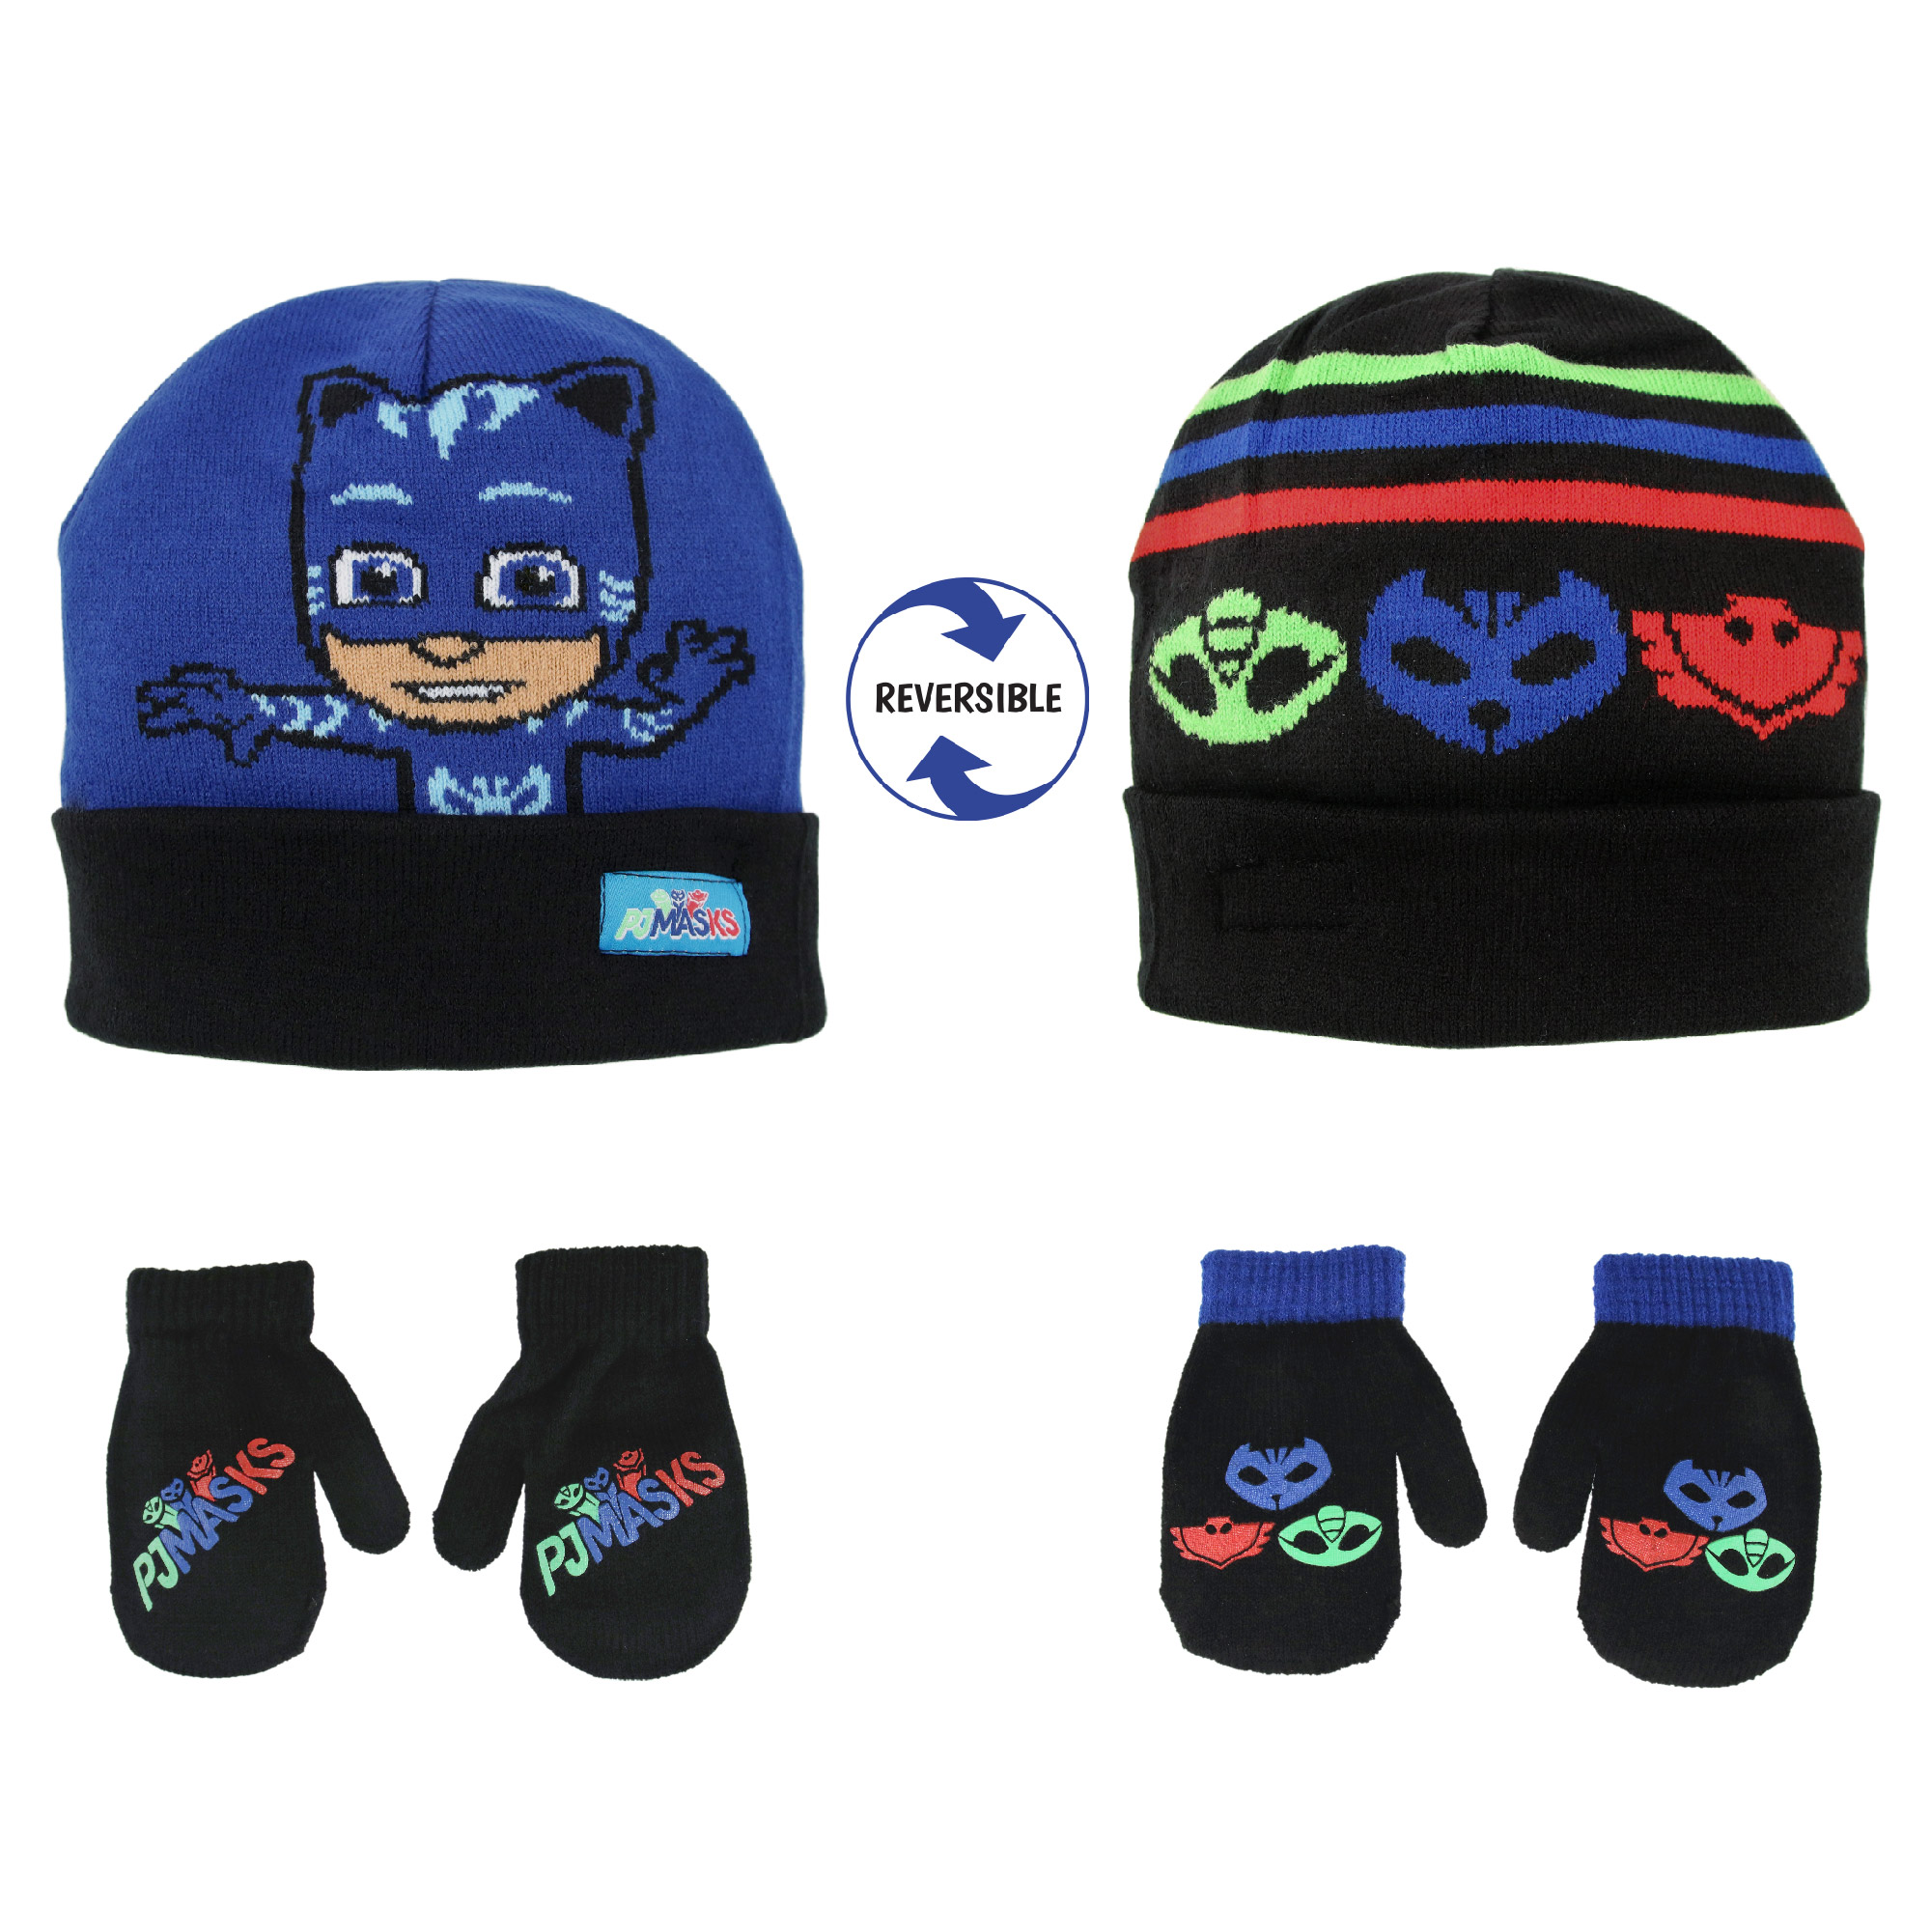 Boys Skeleton Skull Hat with Peak /& Glove Set Ages 2-6 Years